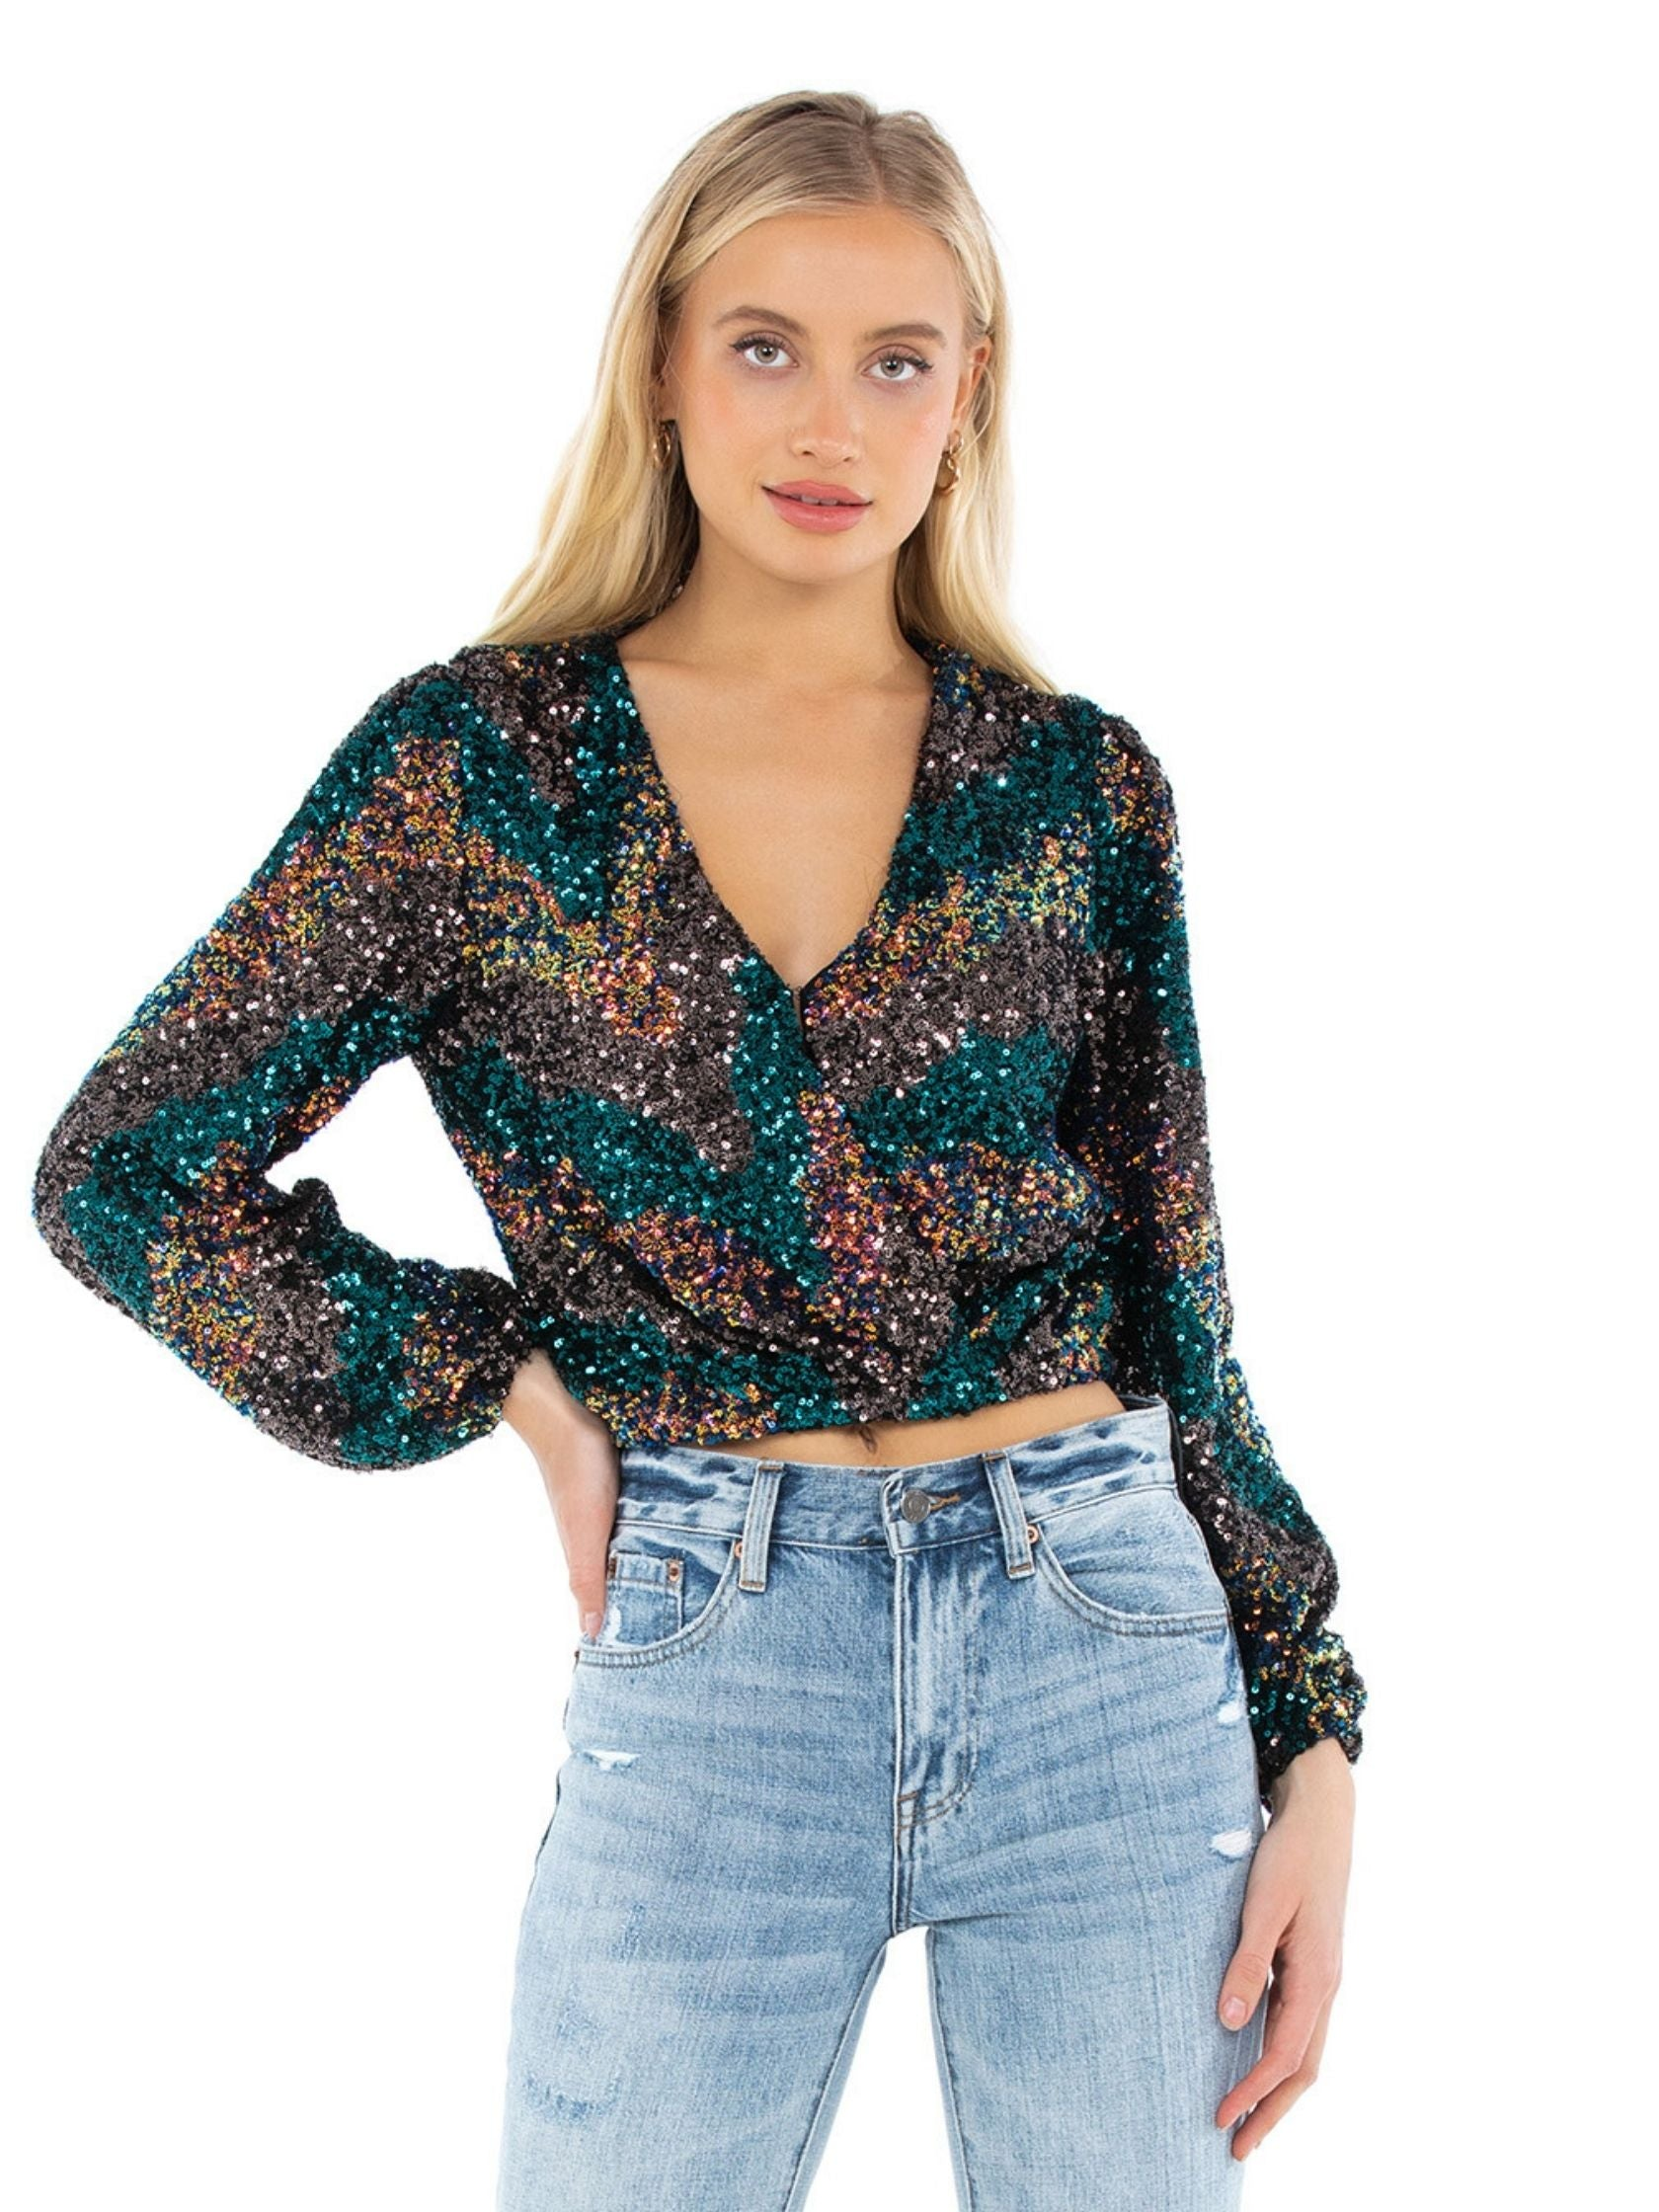 Woman wearing a top rental from ASTR called Primadonna Sequin Top